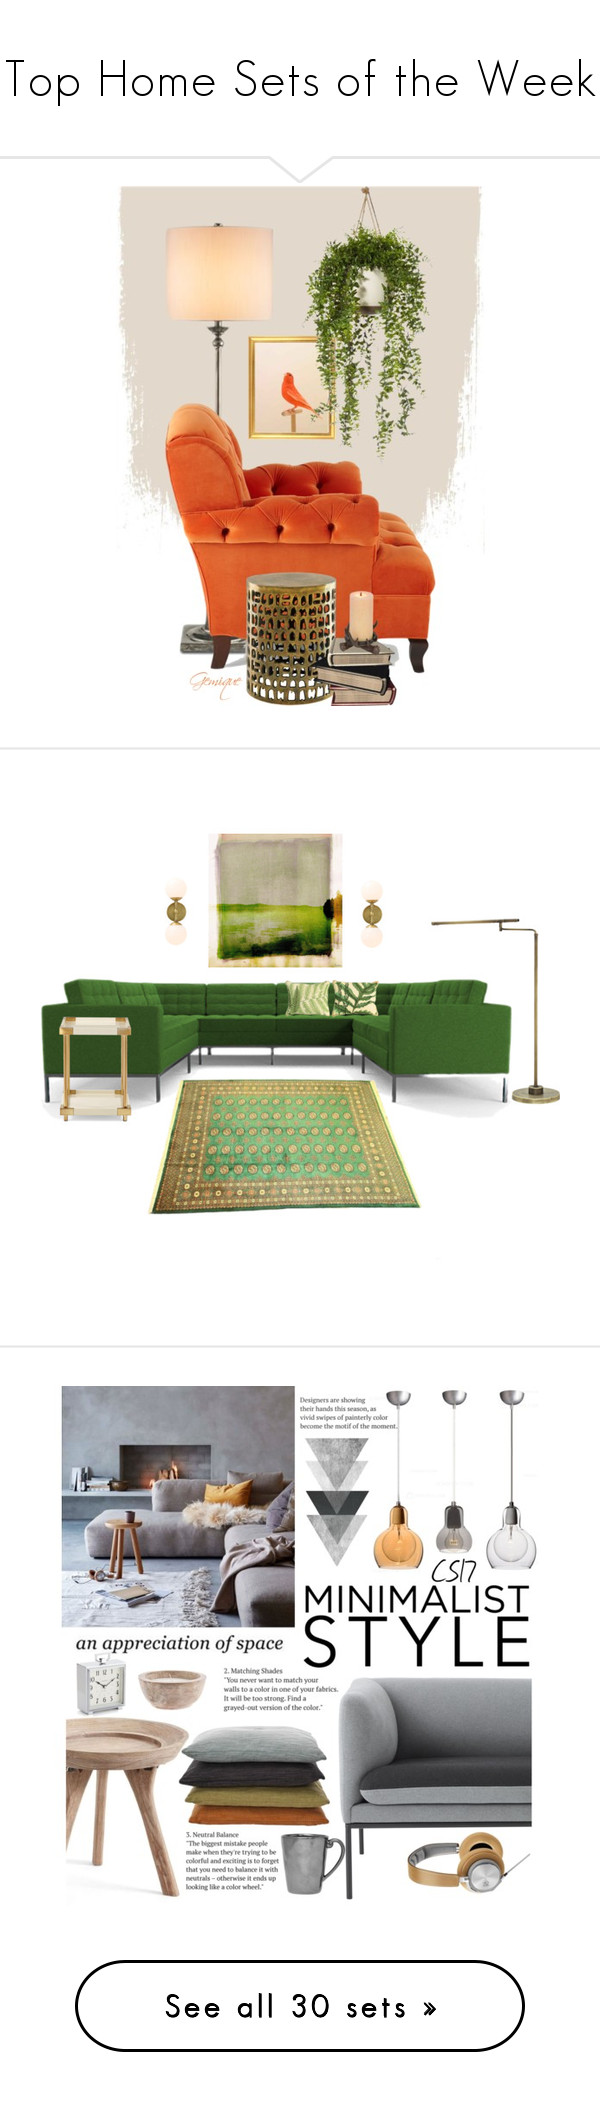 """""""Top Home Sets of the Week"""" by polyvore ❤ liked on Polyvore featuring interior, interiors, interior design, home, home decor, interior decorating, Haute House, Parvez Taj, Joybird and House of Troy"""